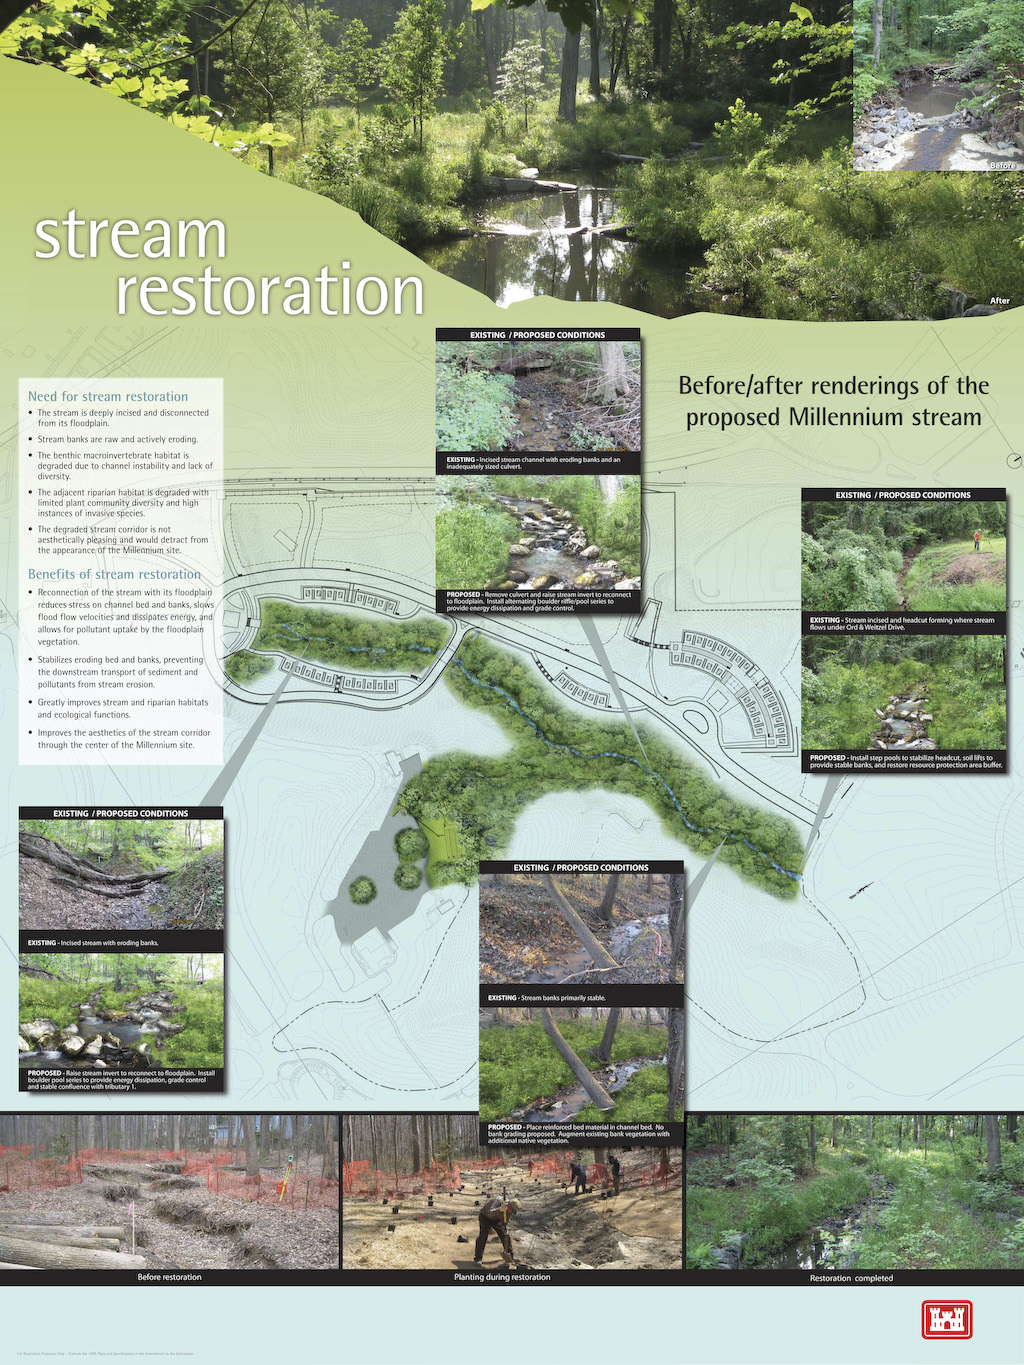 A graphic overview of the stream restoration that will take place as part of the Arlington National Cemetery's Millennium Project.